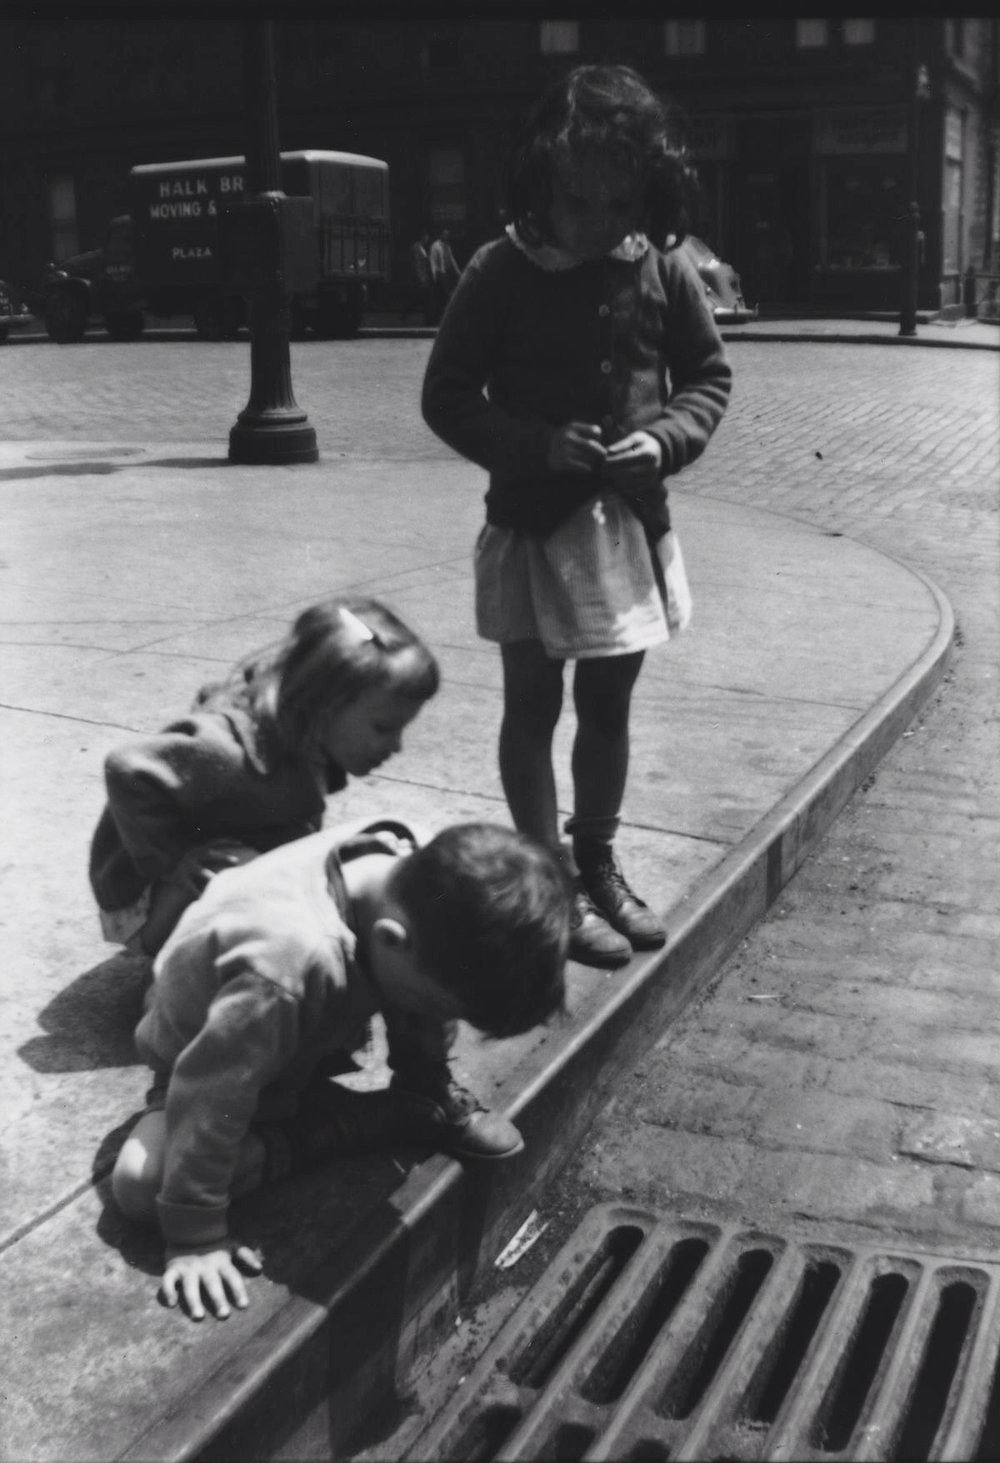 Children in New York City, circa 1930, peering down a sewer grate. Photo by Walker Evans.